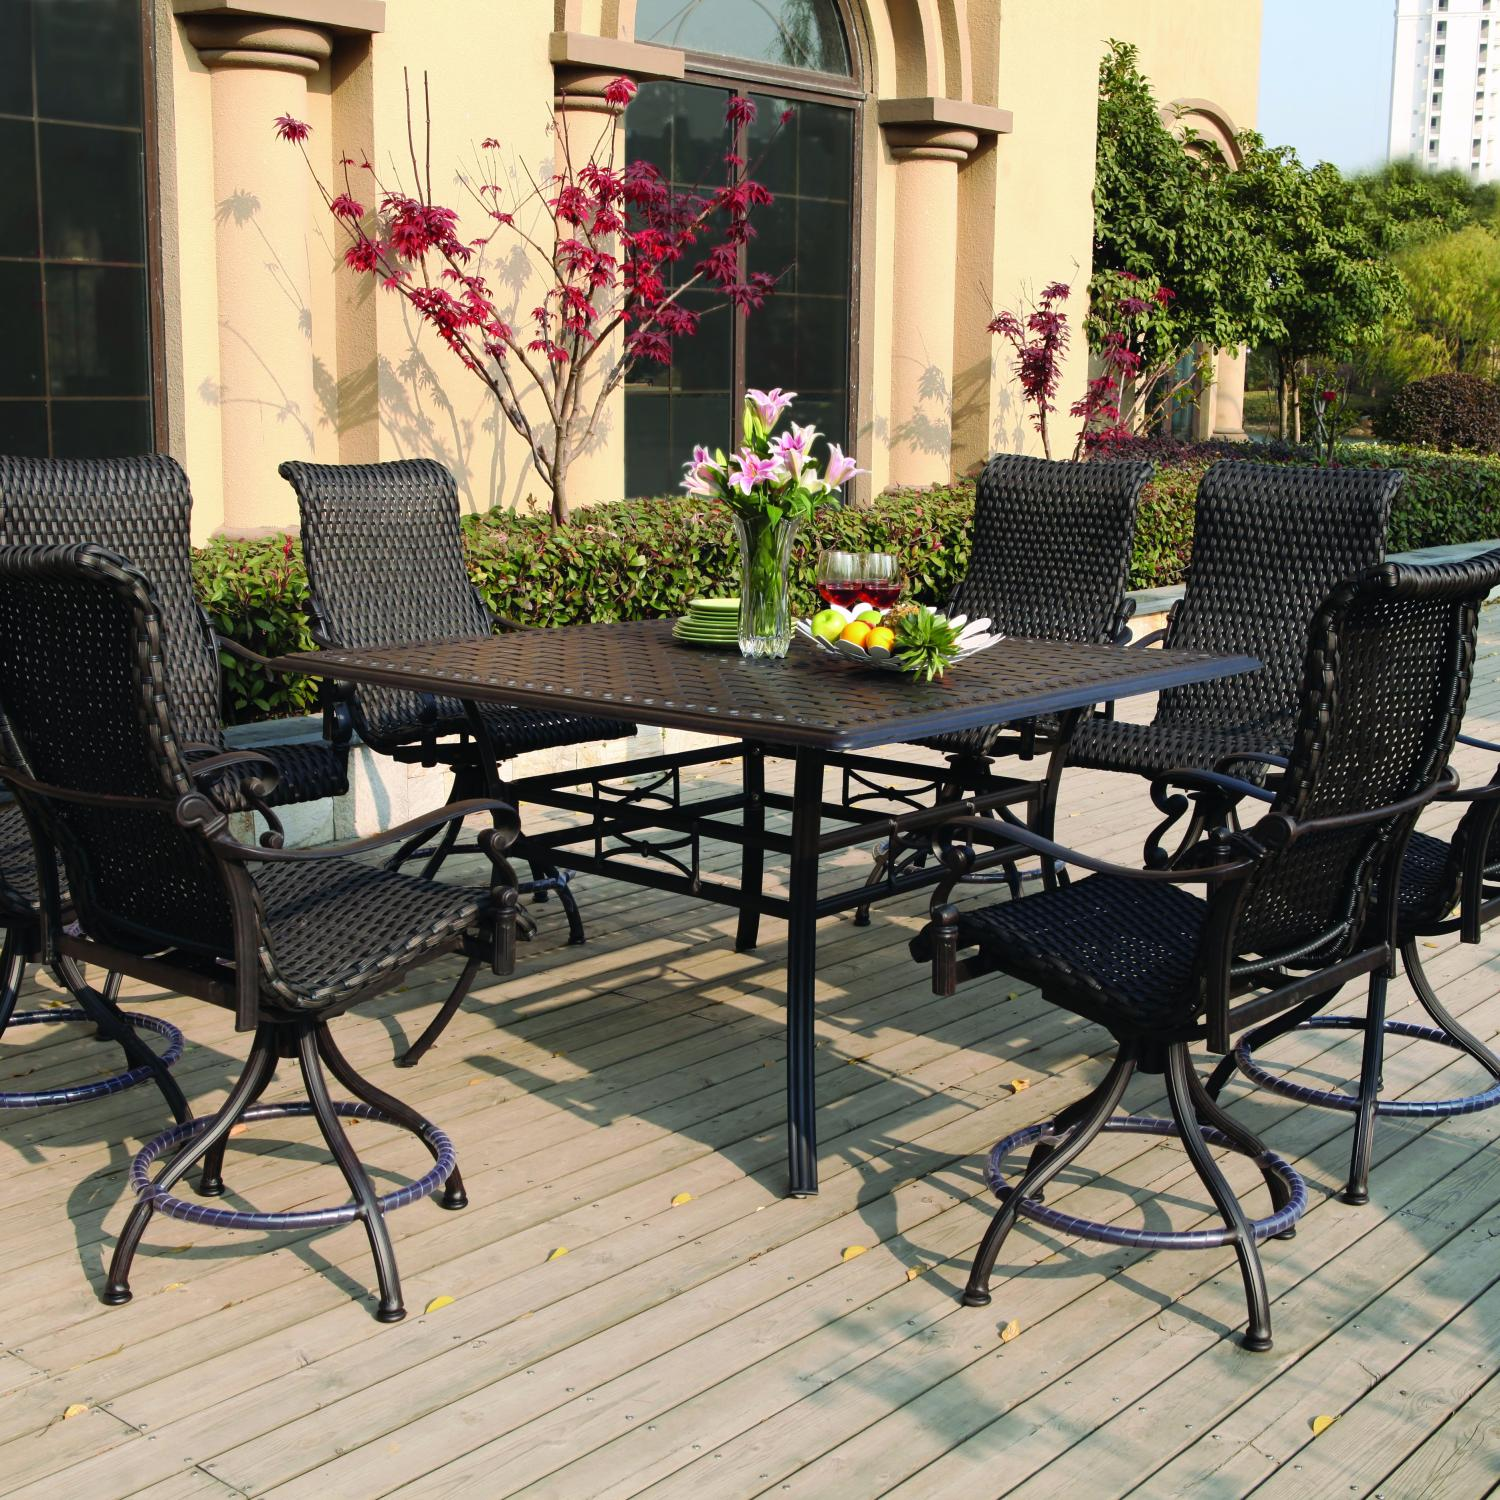 Lombardy 4 Person Sling Patio Dining Set Discount ID